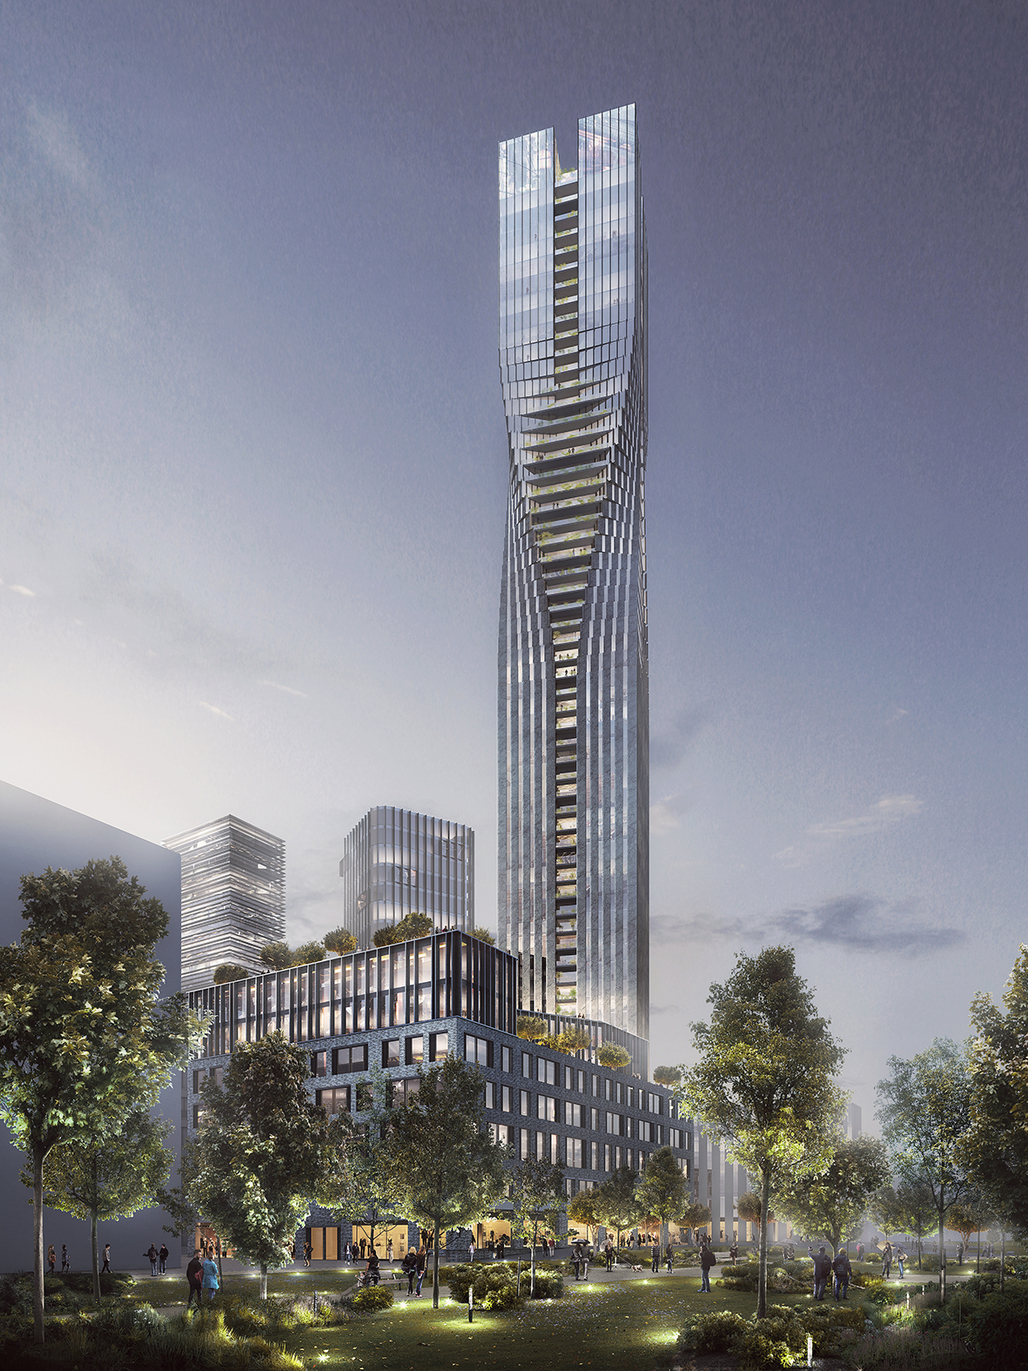 SOM and Entasis' winning design for the Polestar Tower in Gothenburg, Sweden. Image courtesy of SOM.